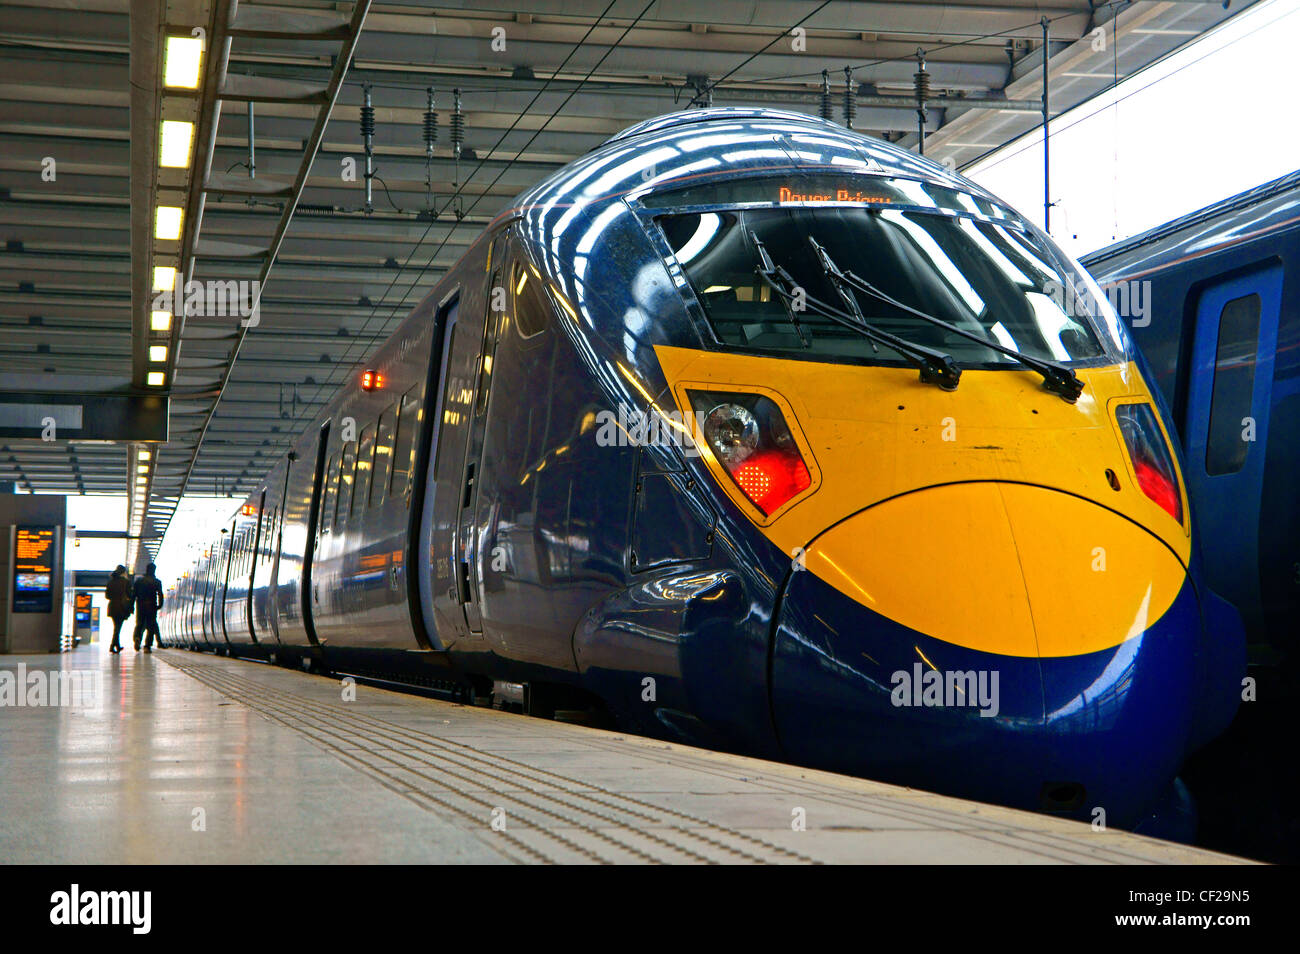 A high speed Javelin train alongside the platform at St Pancras station. The trains are used to operate a high speed - Stock Image